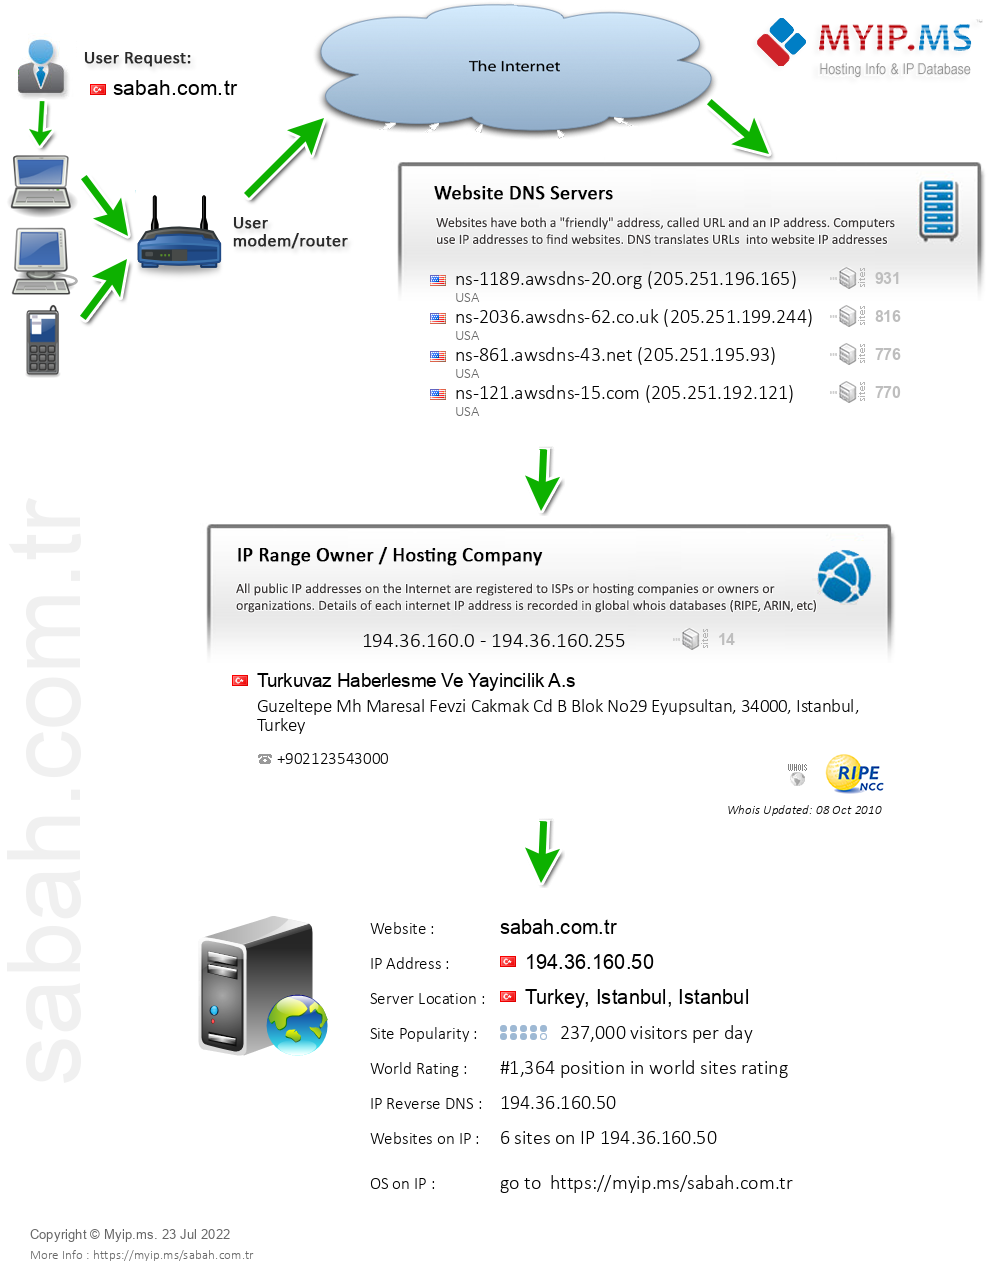 Sabah.com.tr - Website Hosting Visual IP Diagram